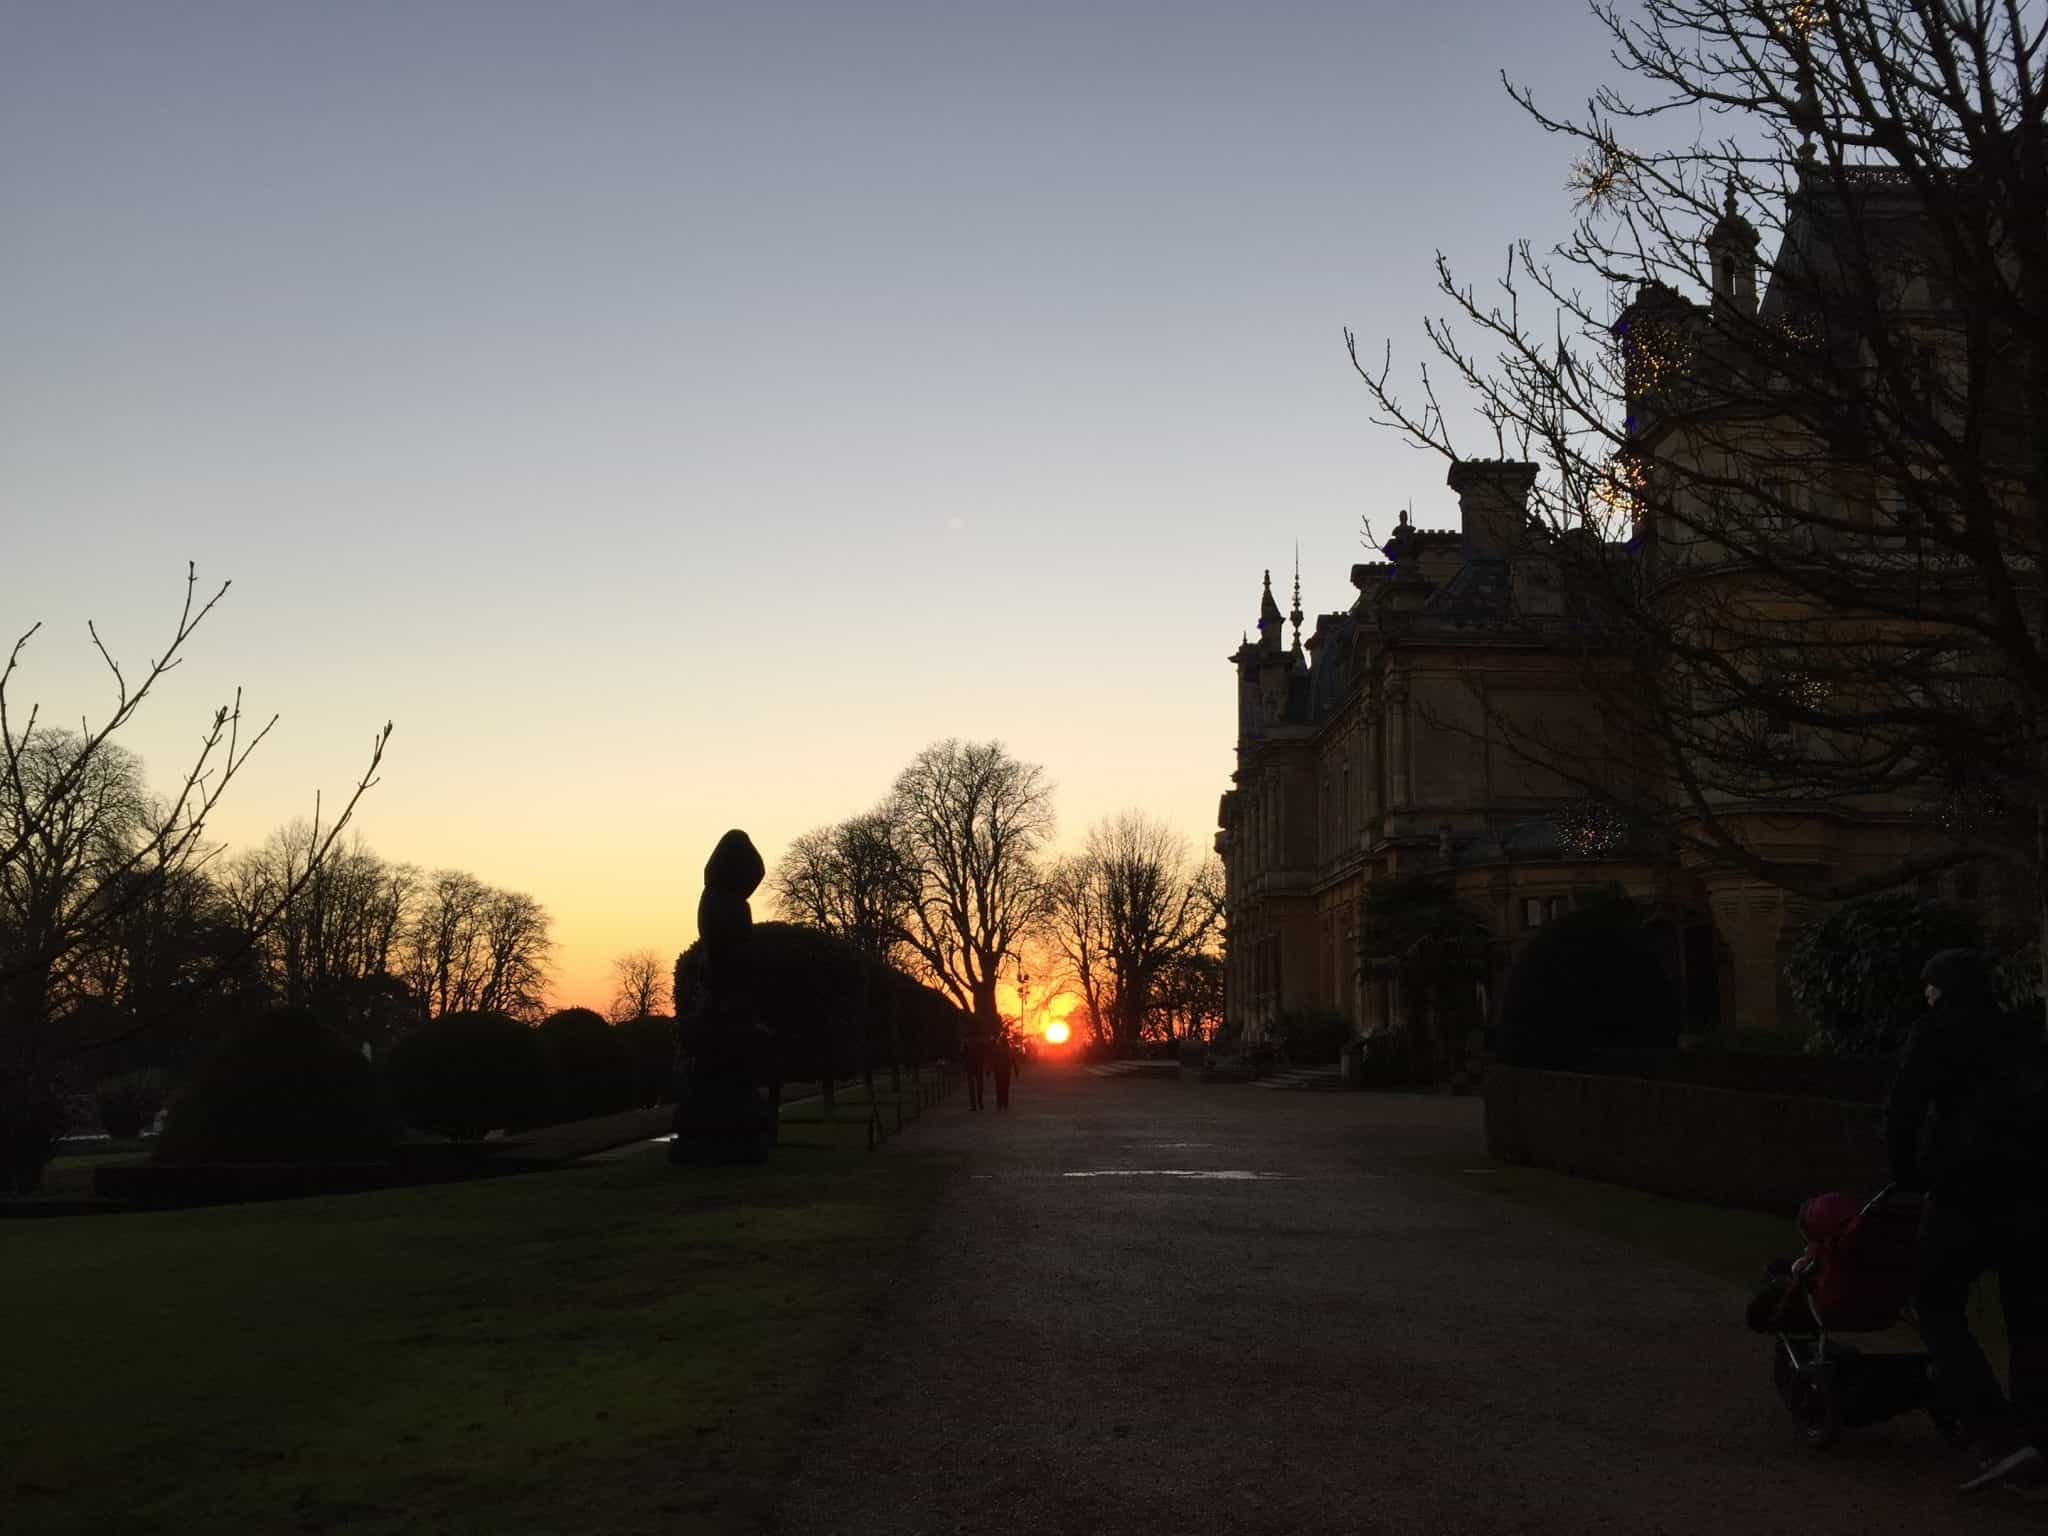 Sunset at the grounds of Waddesdon Manor